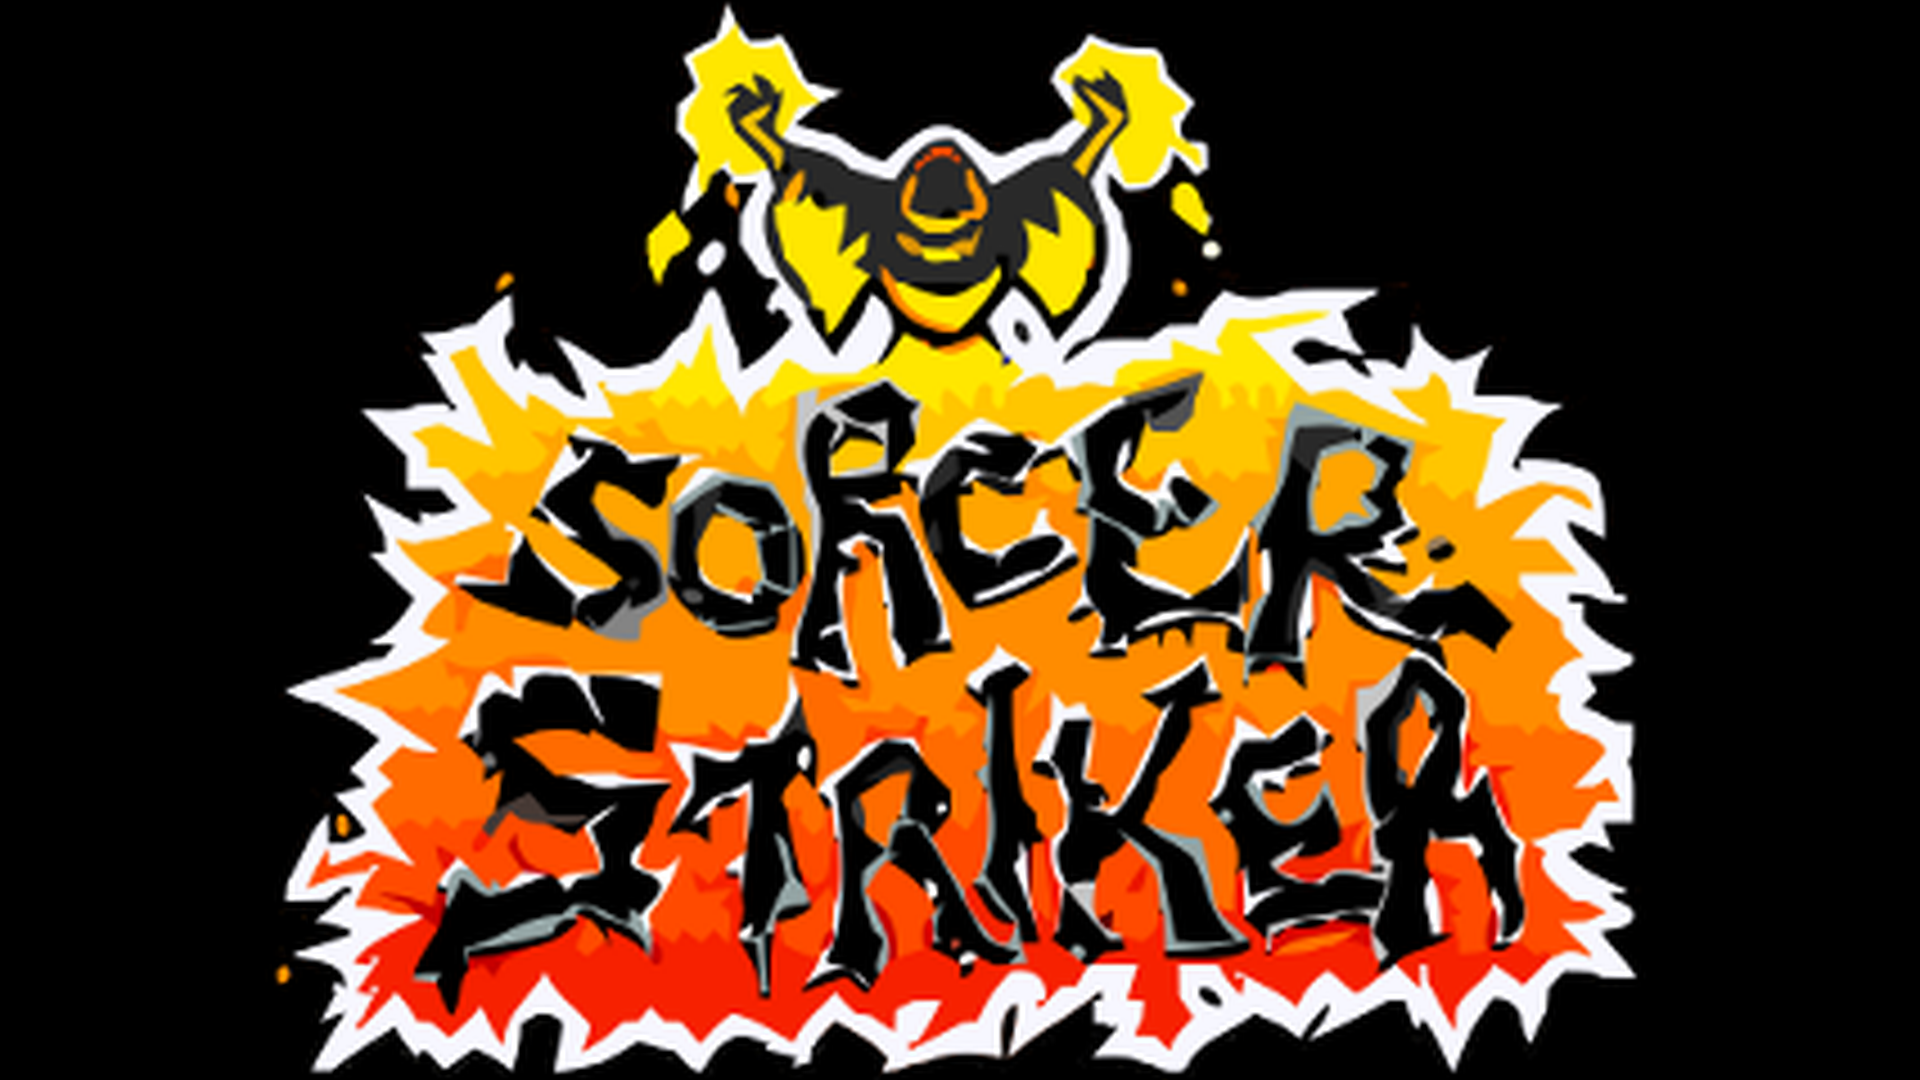 Sorcer Striker Logo